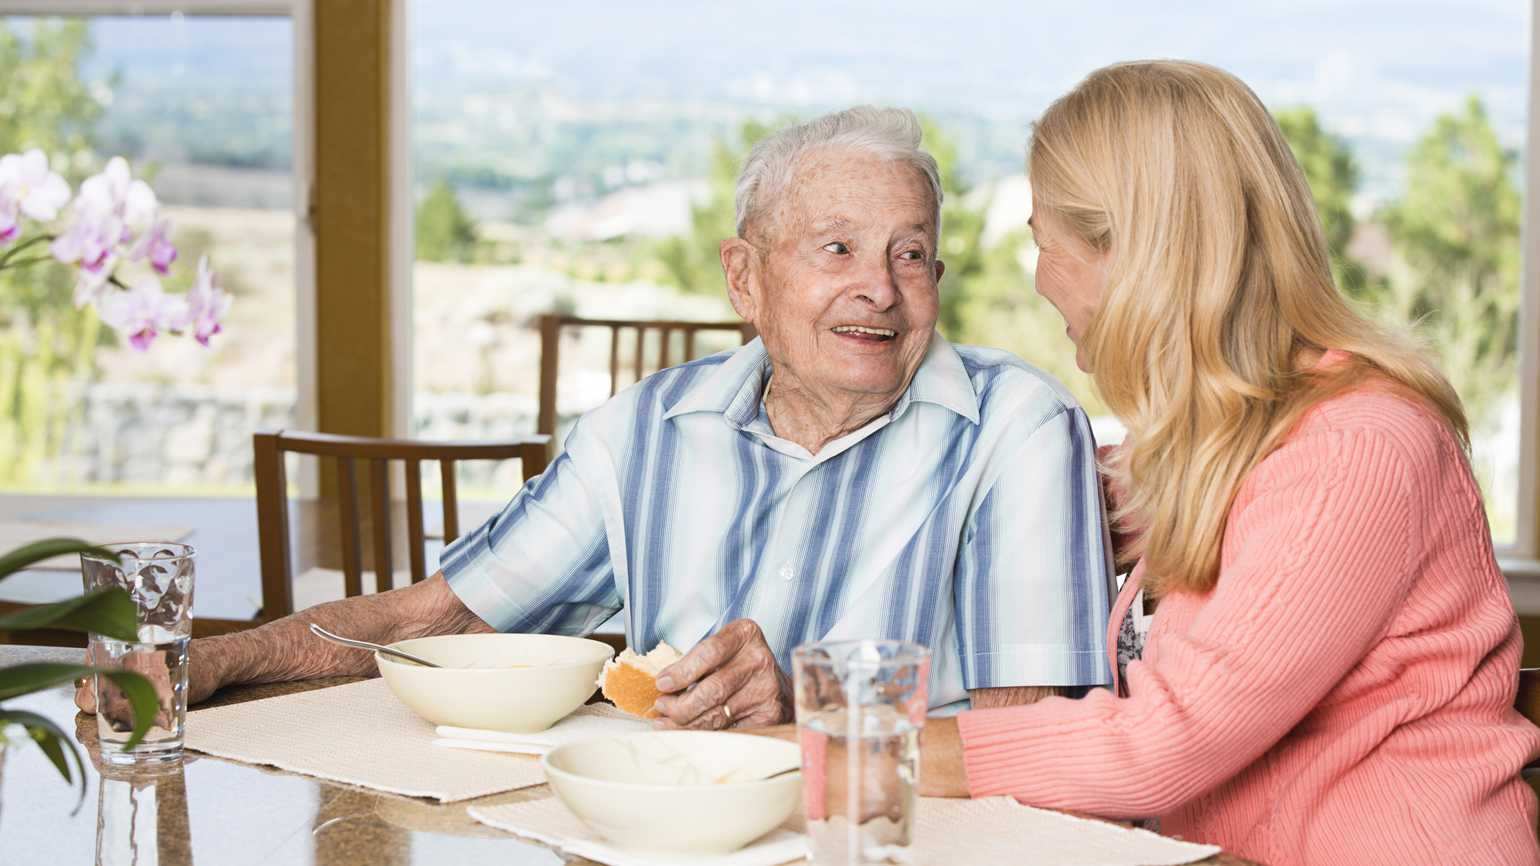 An older gentleman's daughter helps him eat soup at the table.